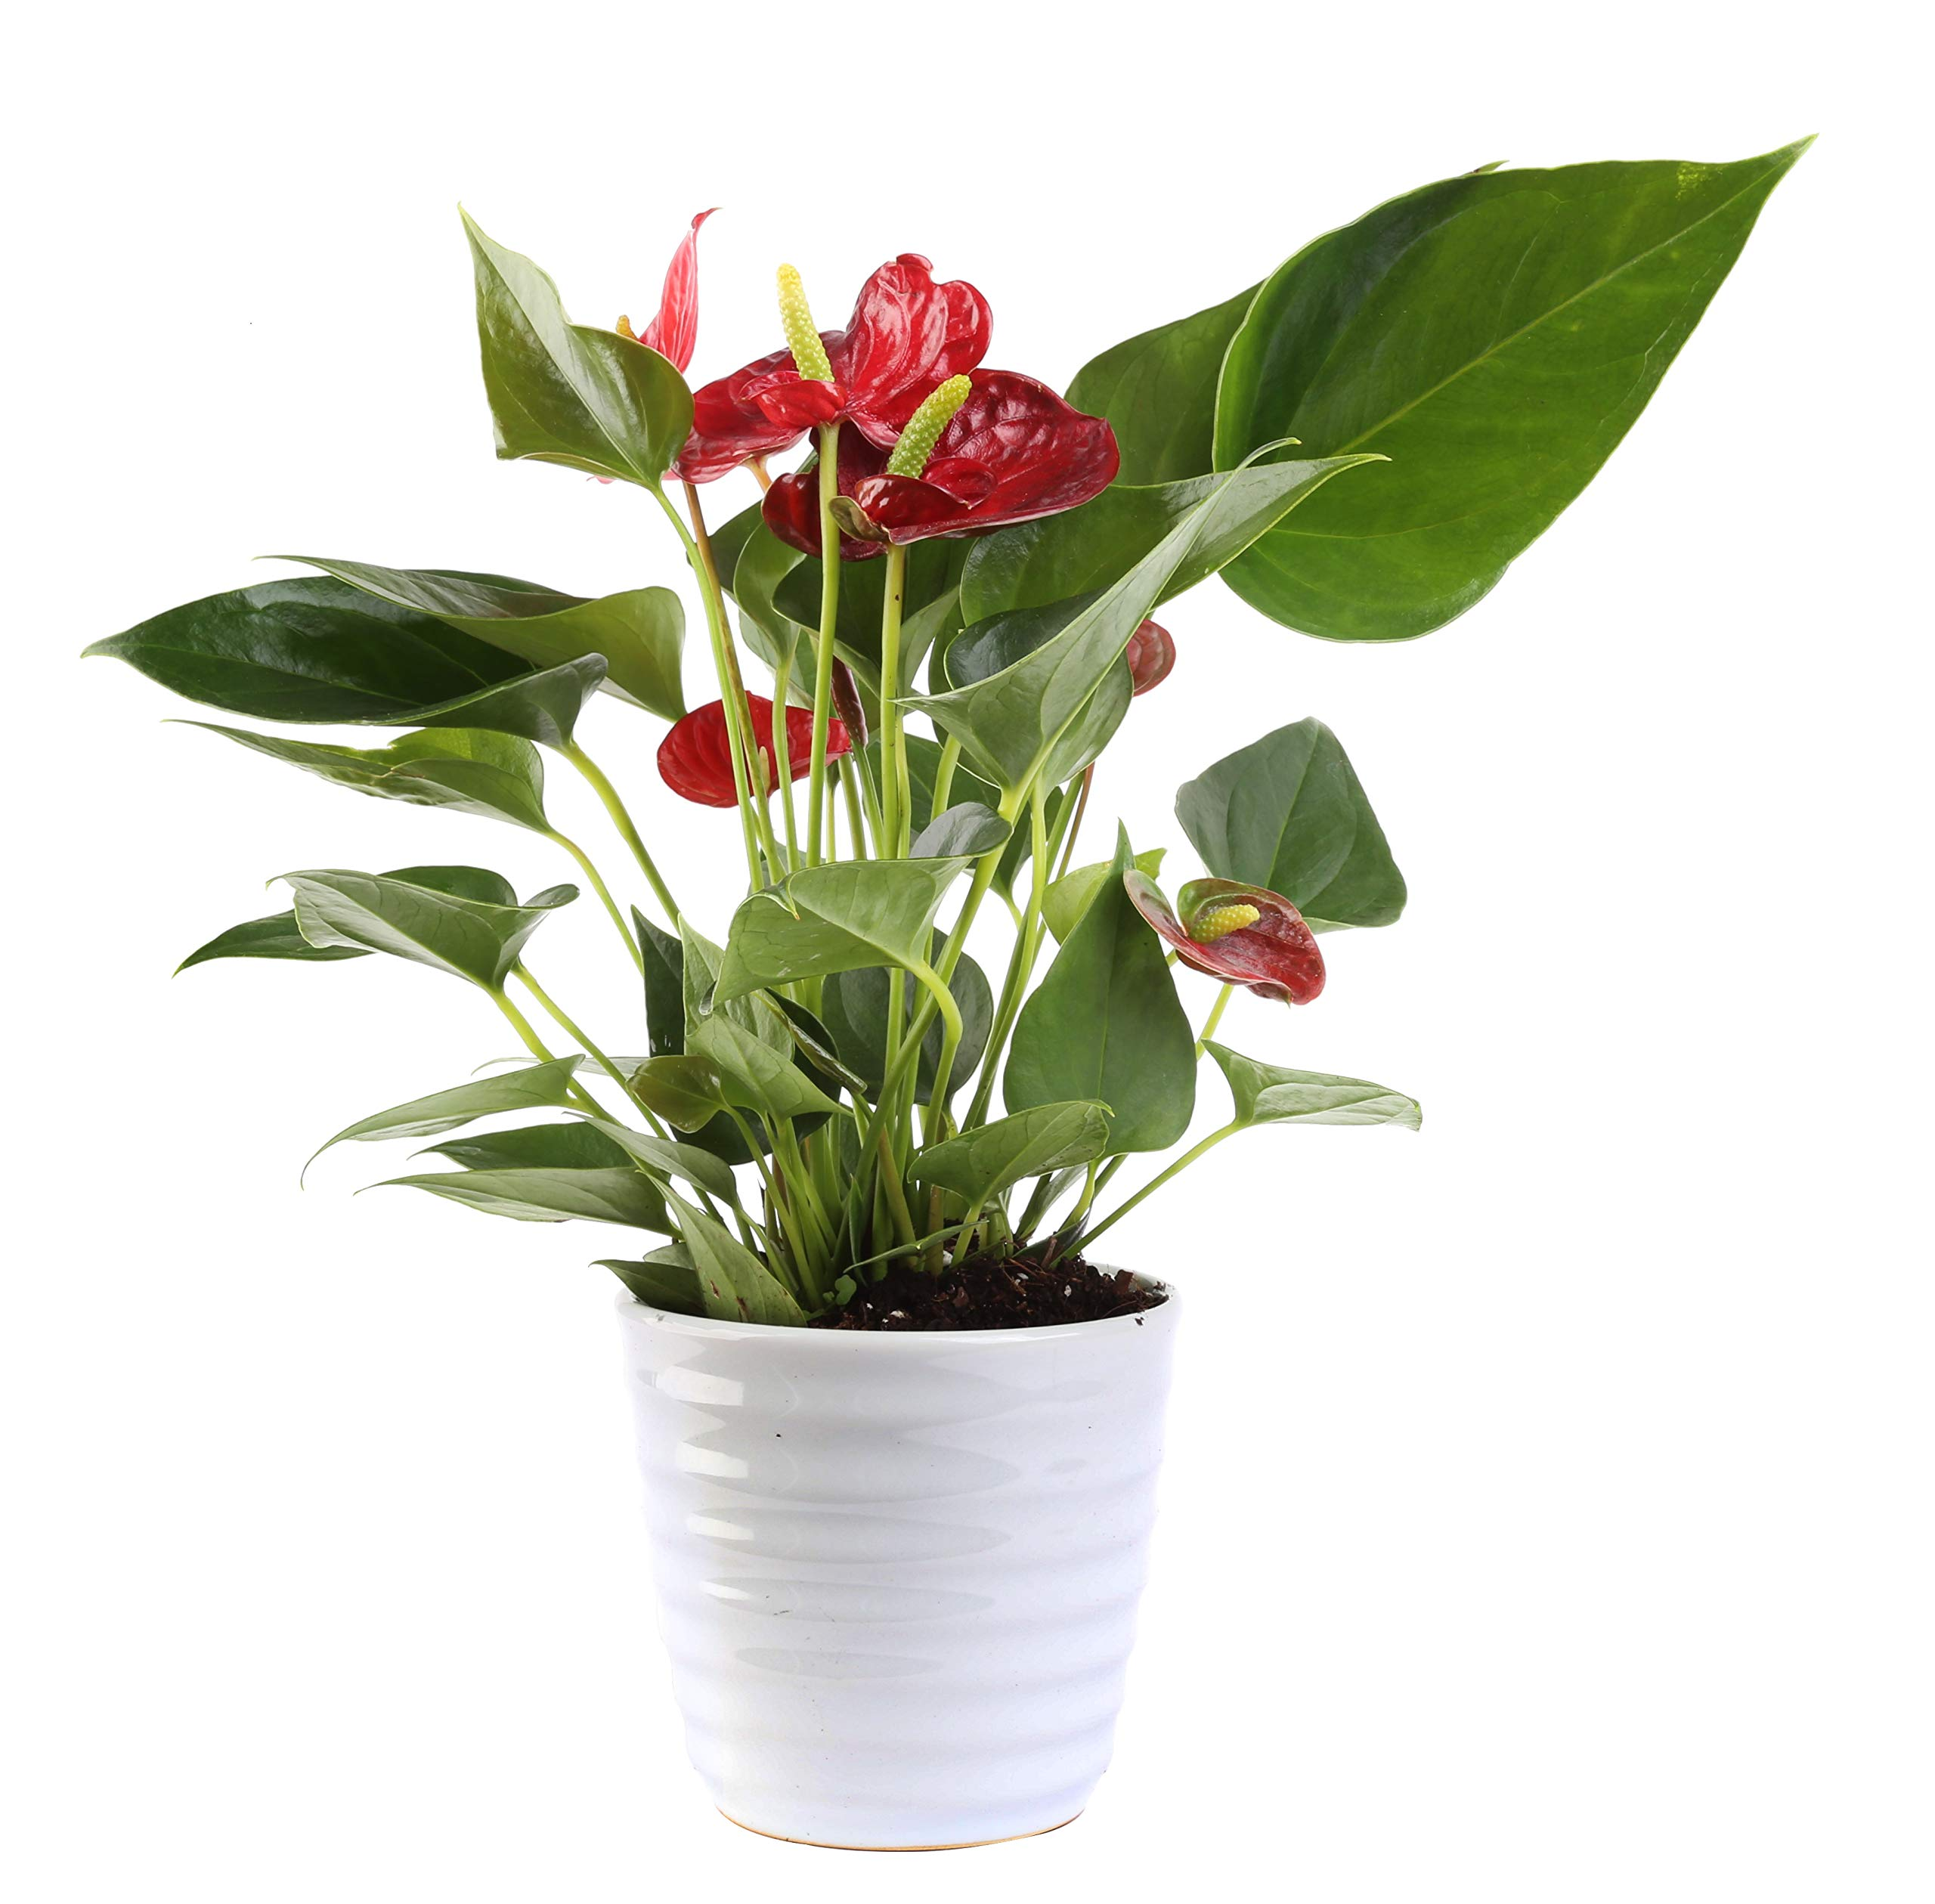 Costa Farms Blooming Anthurium, Live Indoor Plant, 12 to 14-Inches Tall, Ships in White Ceramic Planter, Great Gift, Fresh From Our Farm or Home Décor